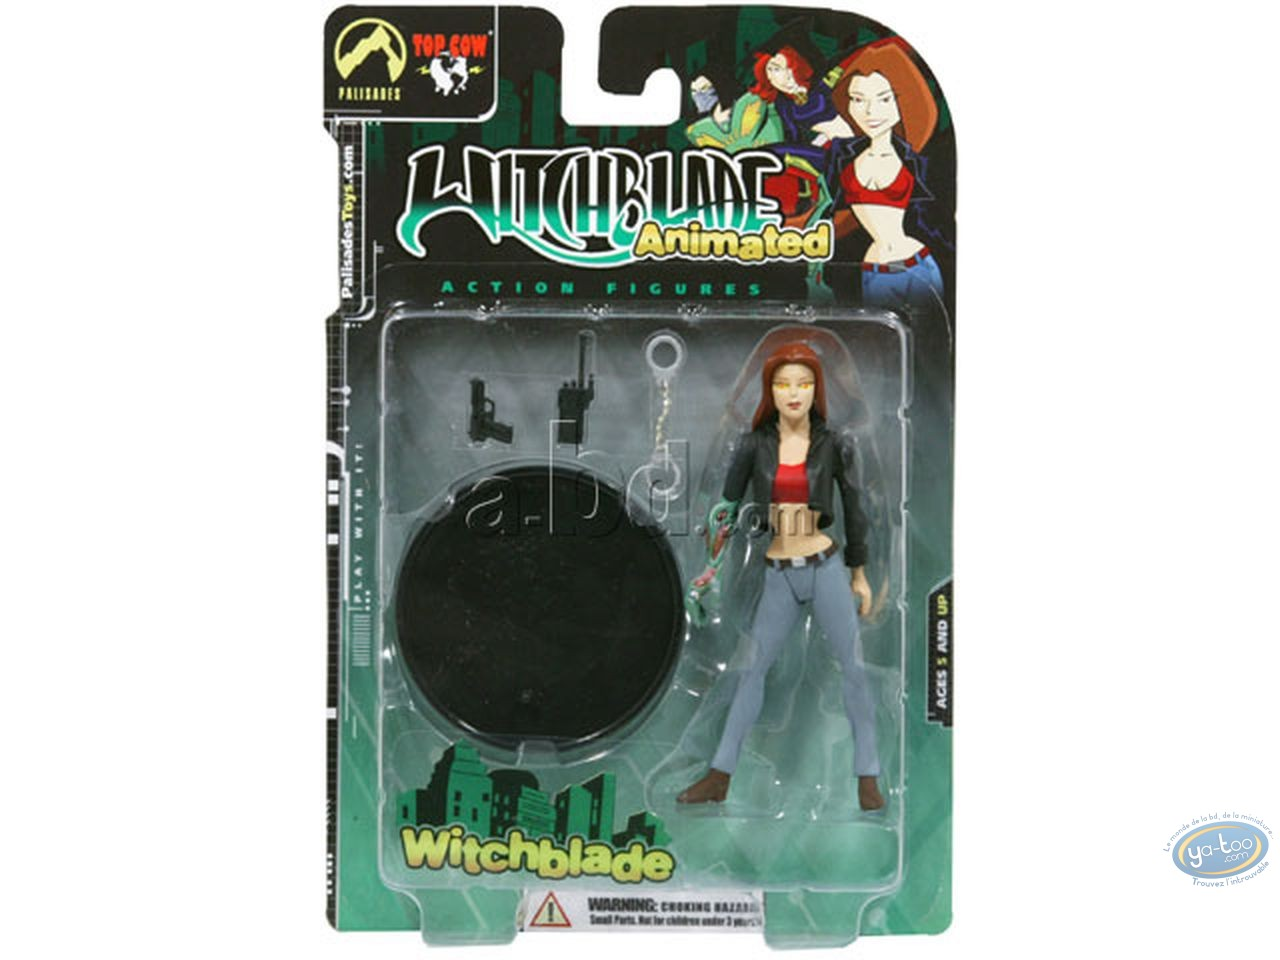 Action Figure, Witchblade : Michael Turner, Witchblade